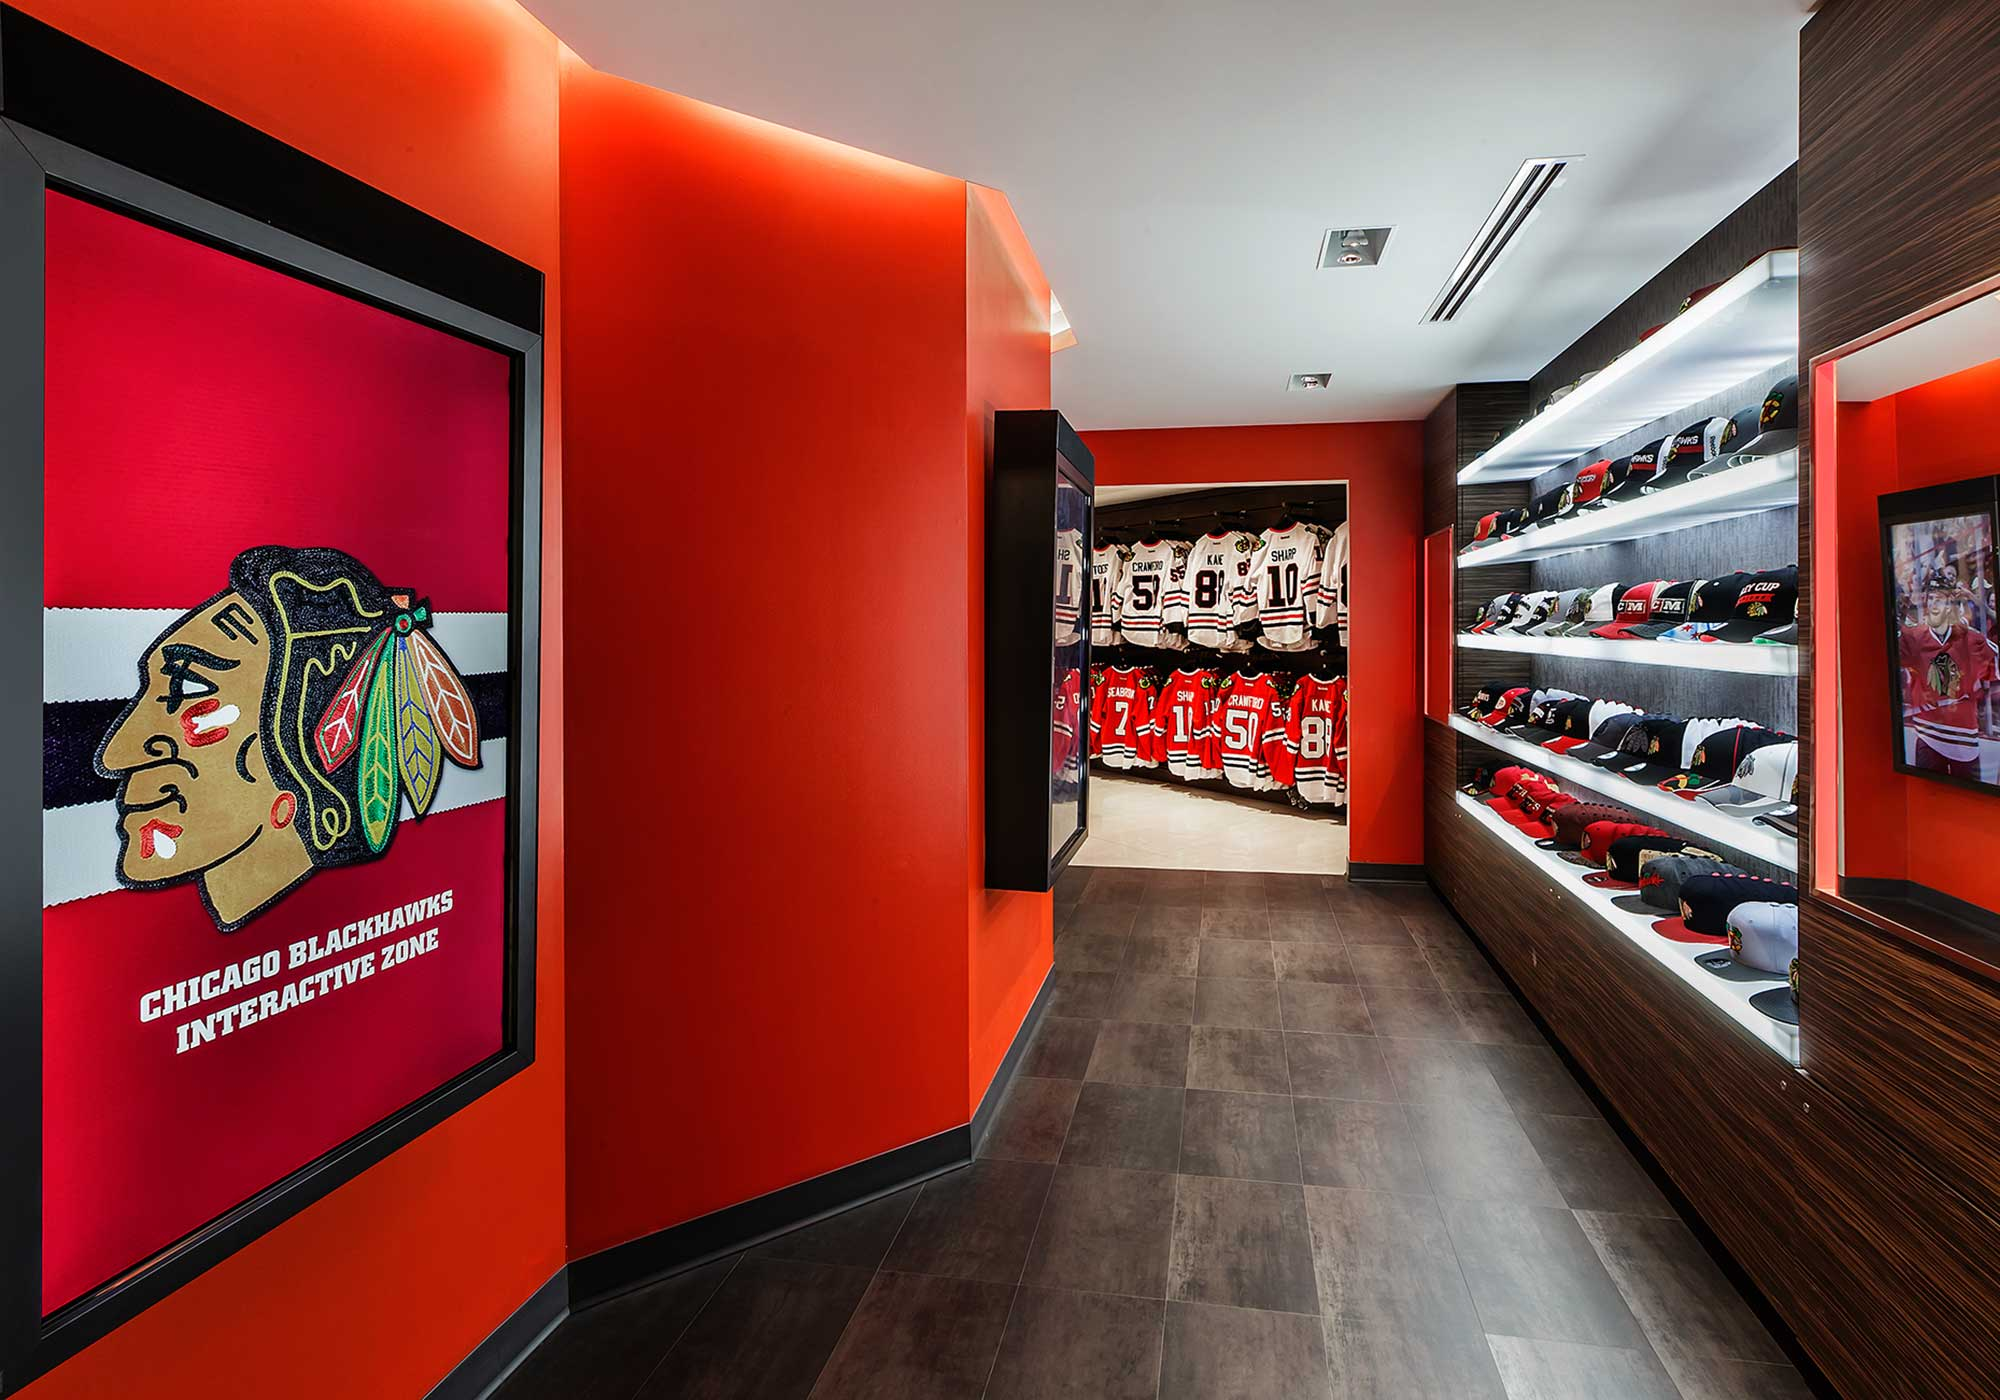 Display of baseball caps with Blackhawks logo and a framed picture of the logo mounted on the wall